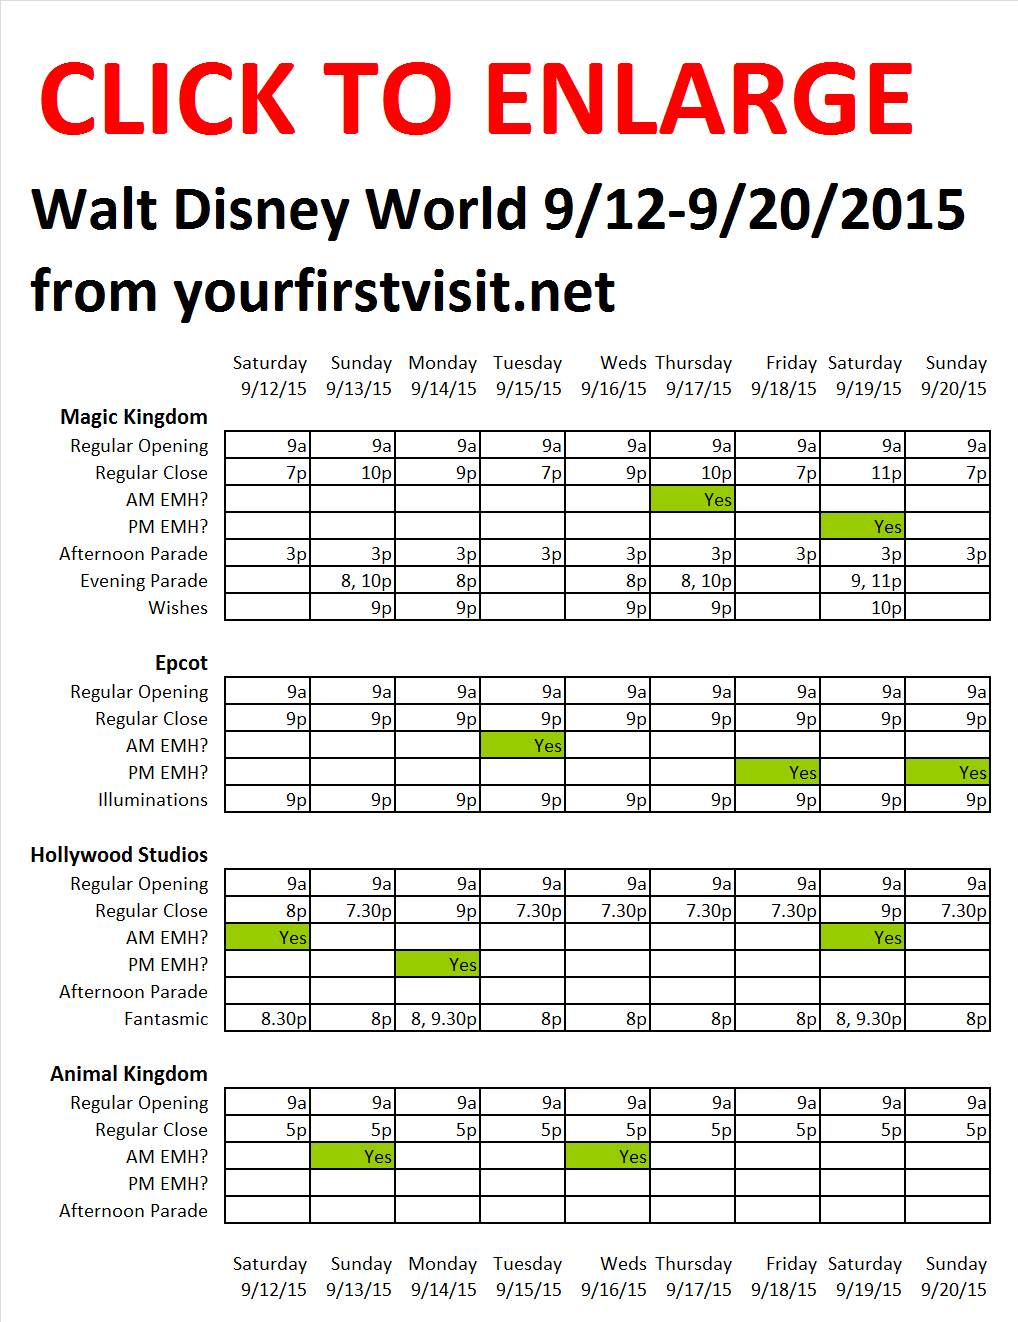 Disney World 9-12 to 9-20-2015 from yourfirstvisit.net